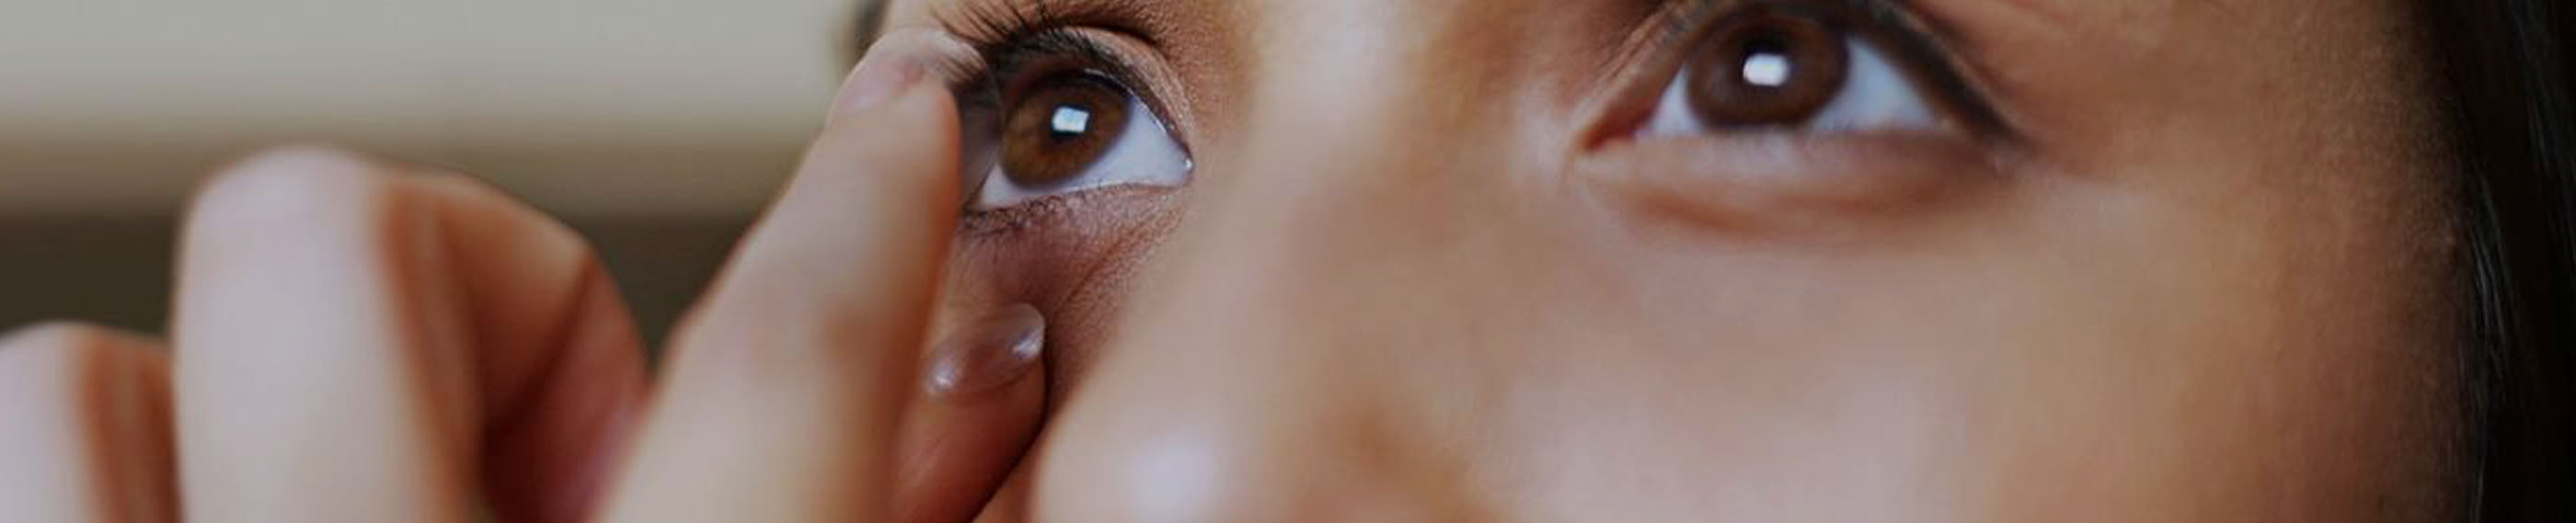 A close-up of a young woman looking into a mirror putting her contact lenses on.